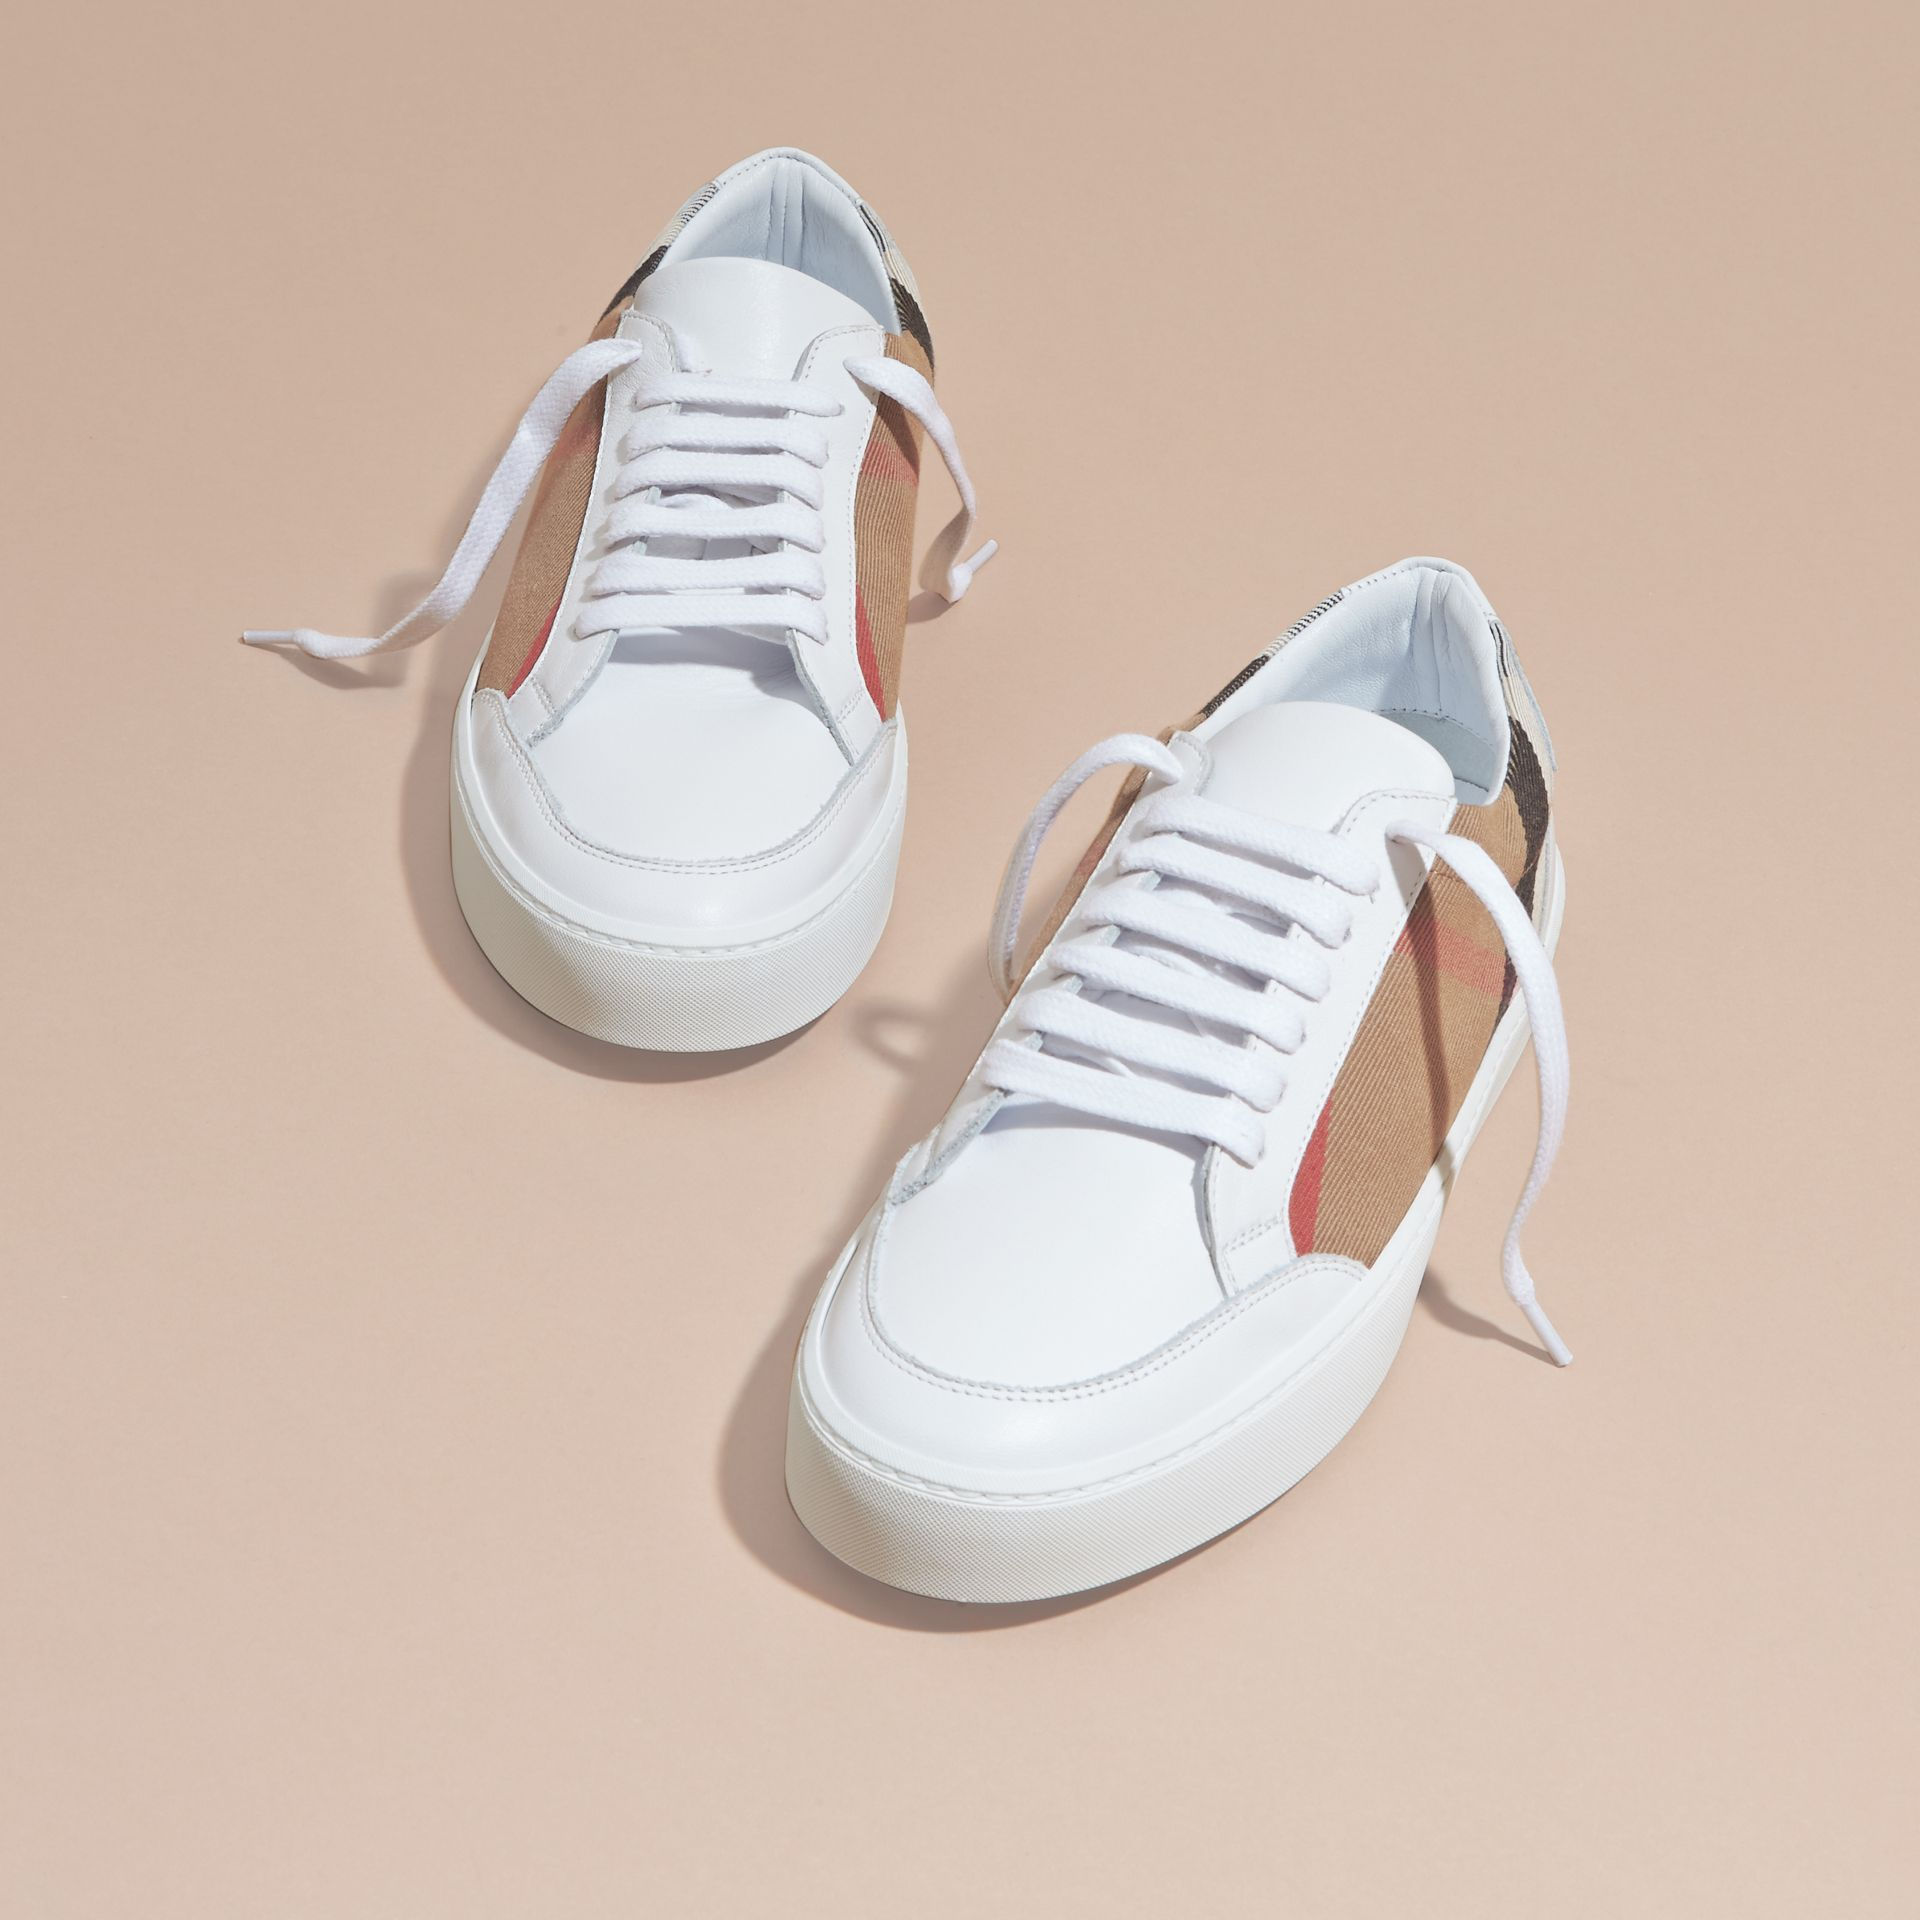 House check/ optic white Check Detail Leather Sneakers House Check/ Optic White - gallery image 3